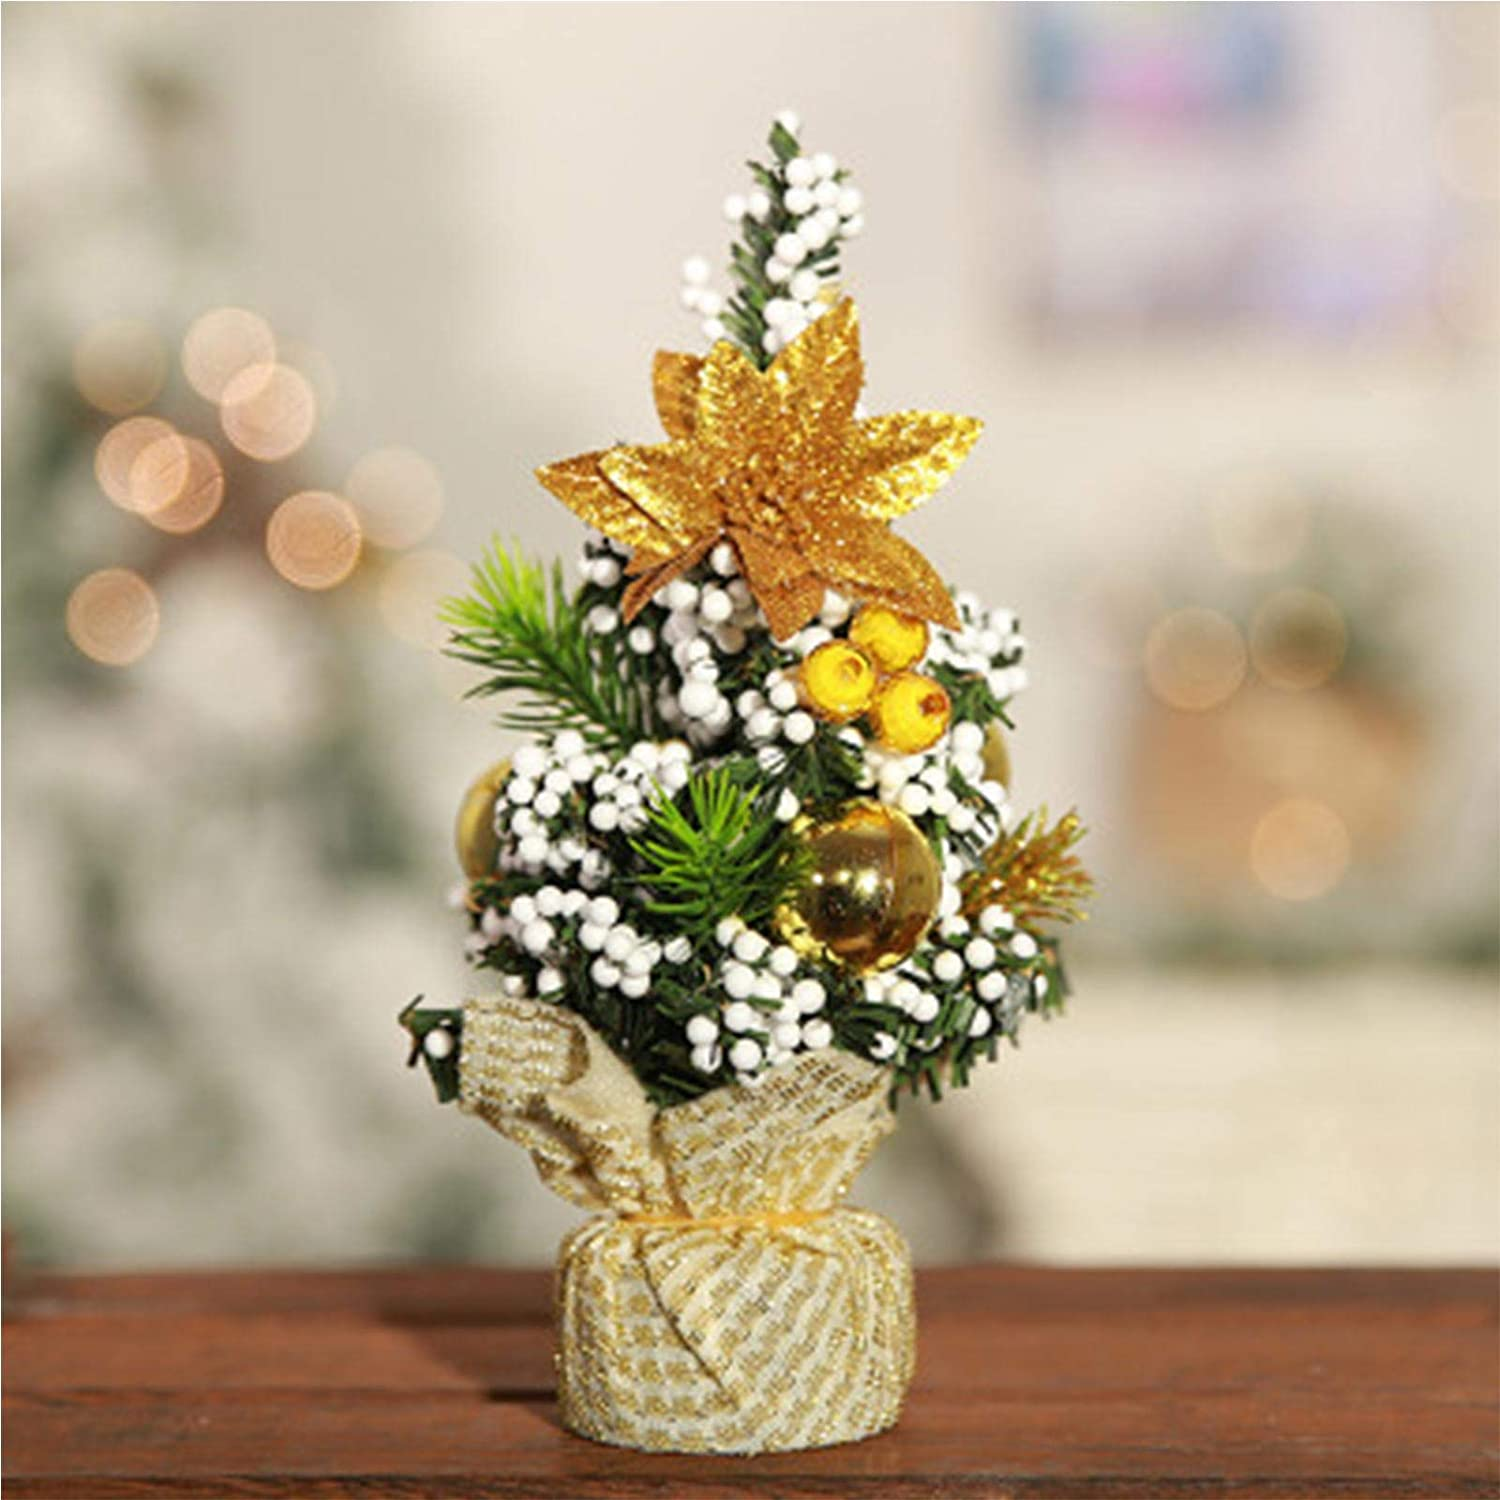 Mini Xmas Pine Tree with Decorations Artificial Christmas Tree Warm Yellow Led Lights Indoor Decorative Mini Xmas Tree for Christmas, Home, Kitchen, Dining Table Decor 20cm Mini